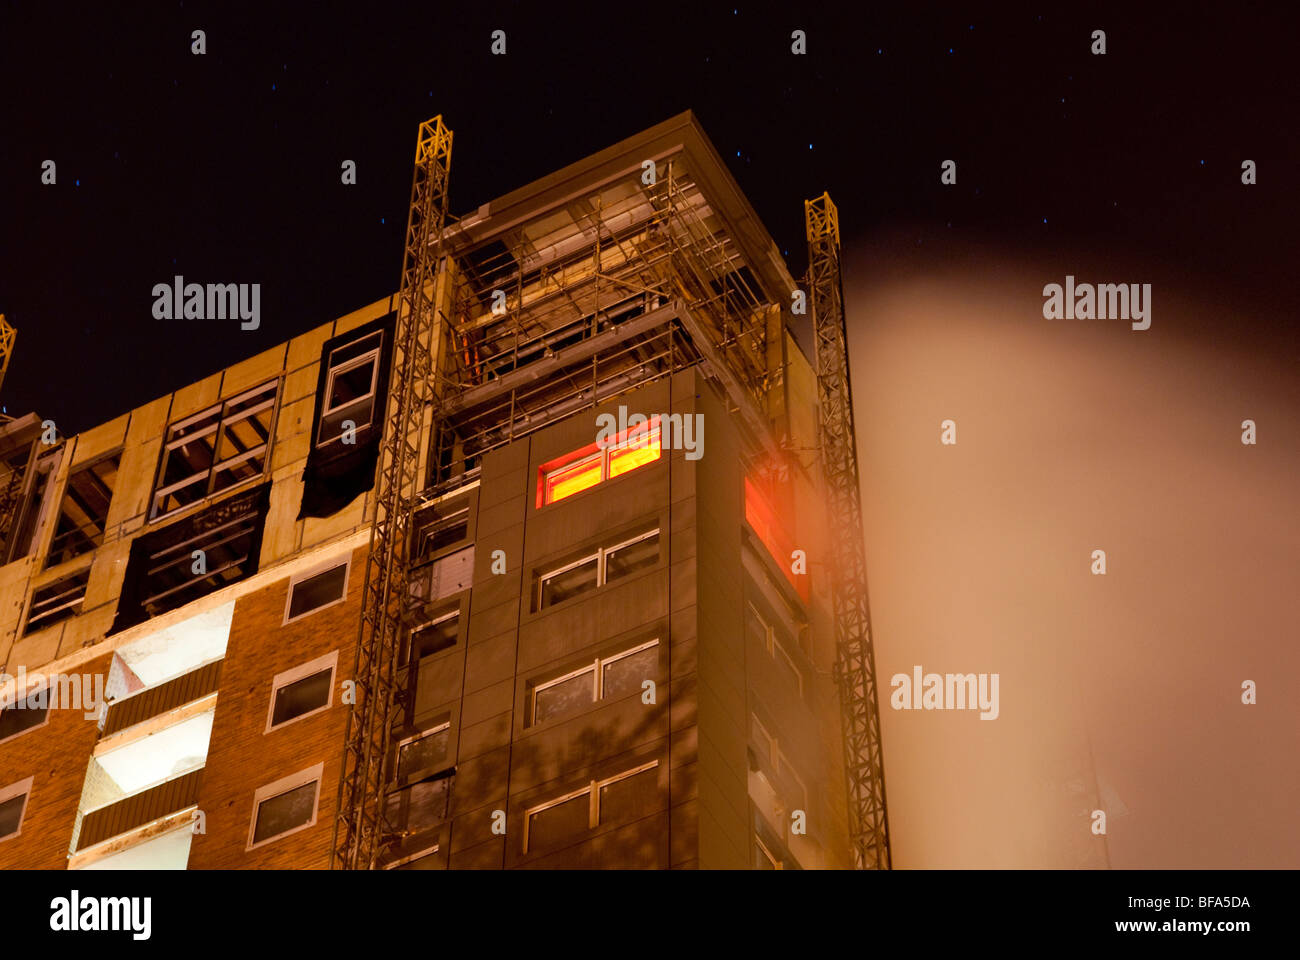 13th Floor flat on fire at night in block of flats - Stock Image